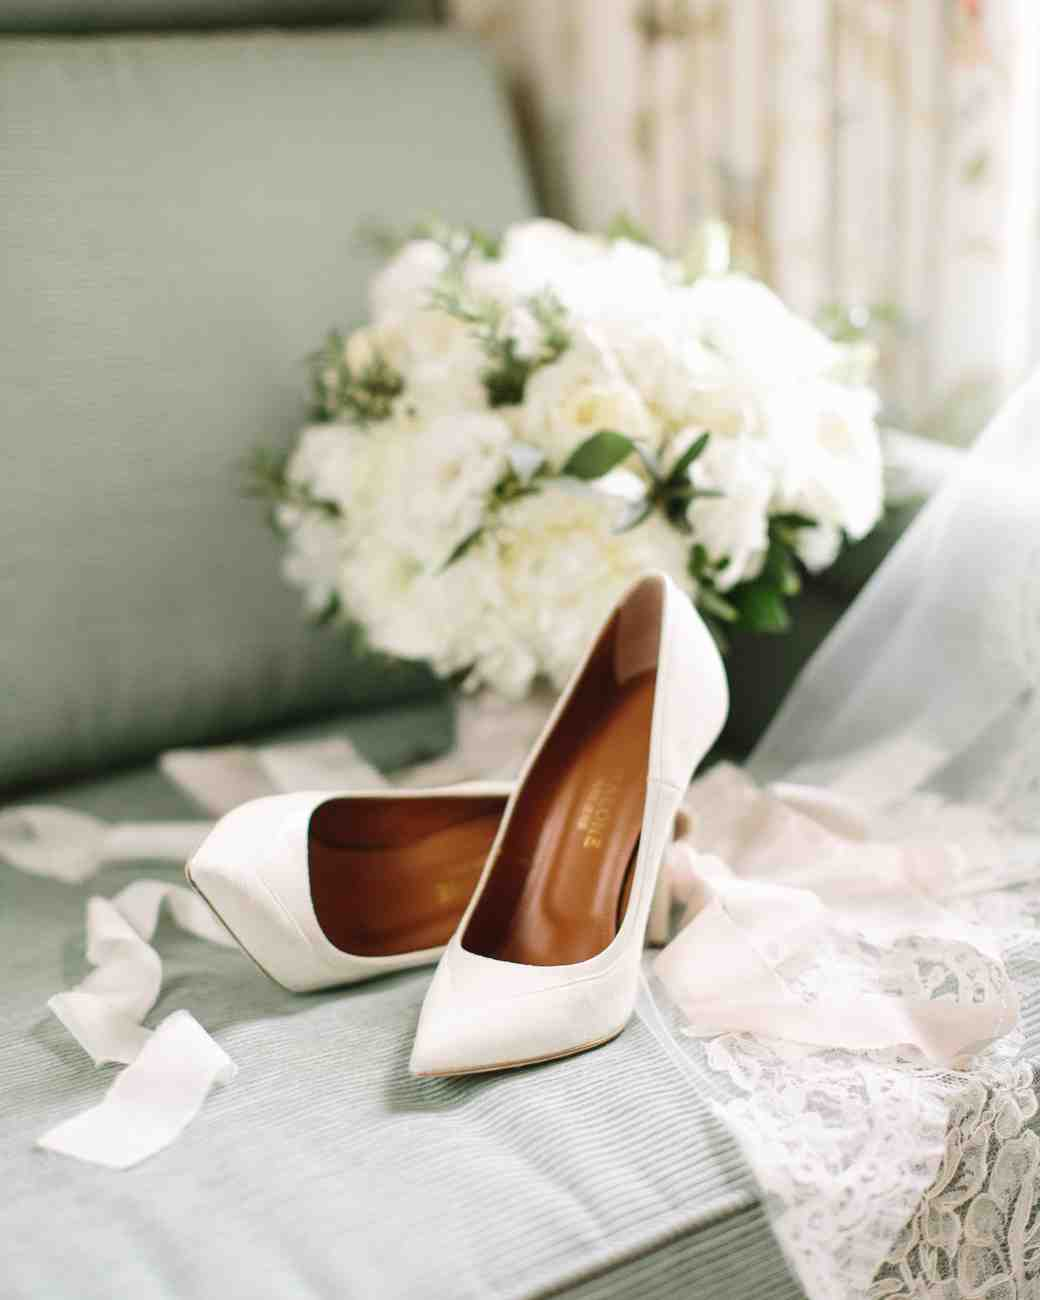 mallory-diego-wedding-shoes-003-s112628.jpg